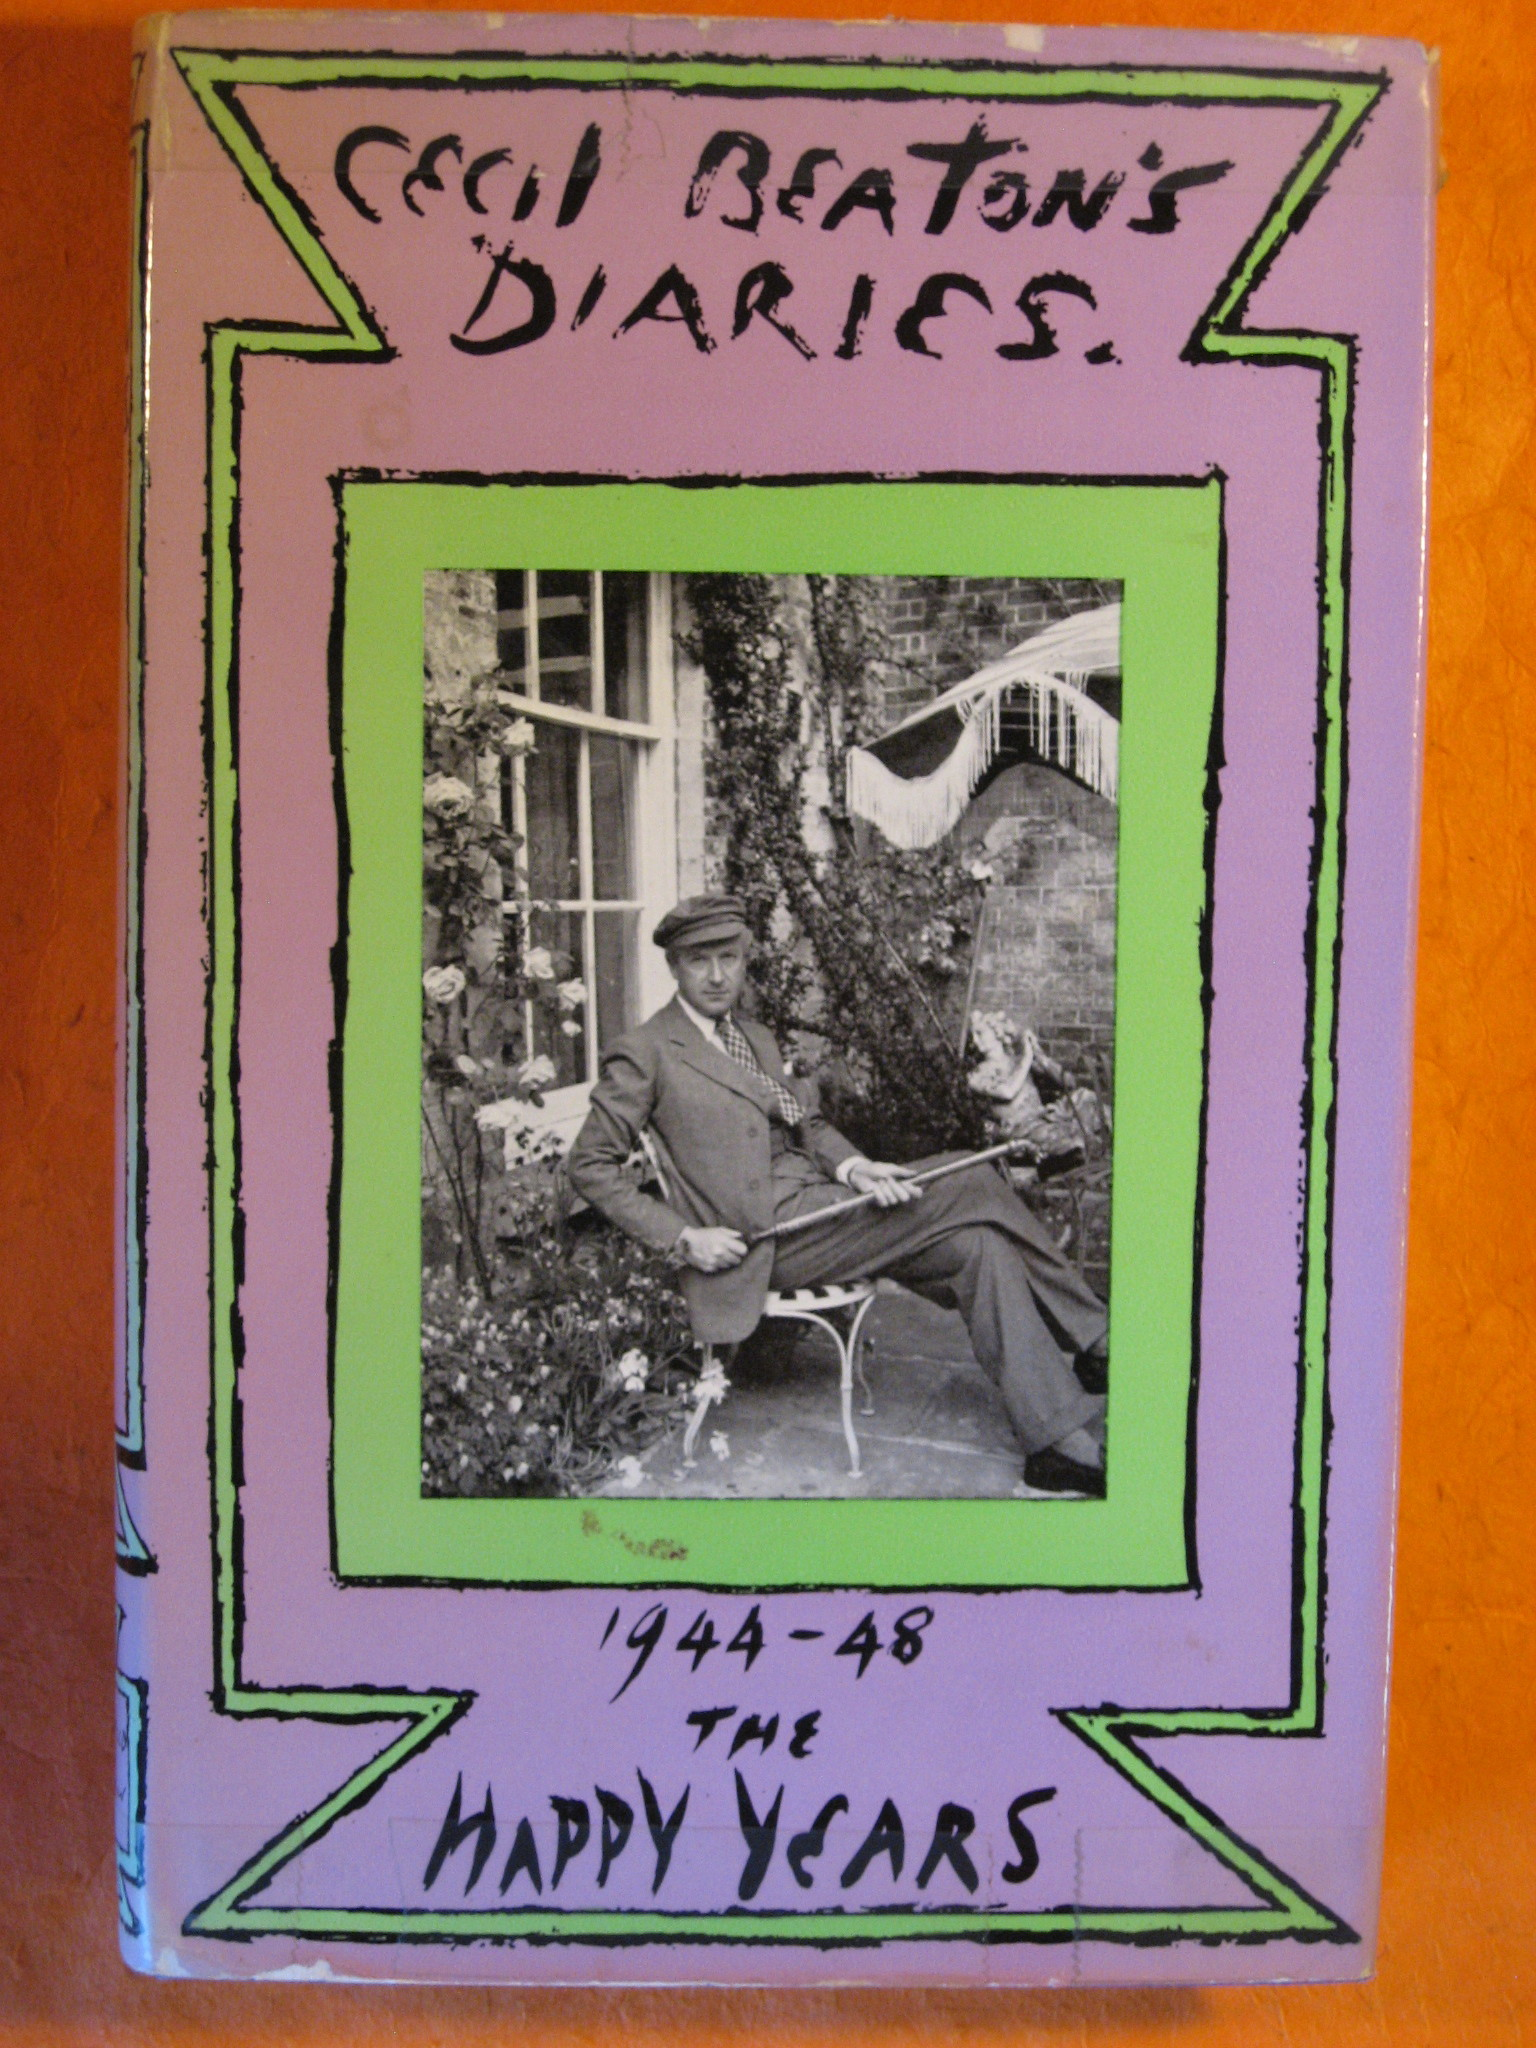 The Happy Years:  Diaries, 1944-48, Beaton, Cecil